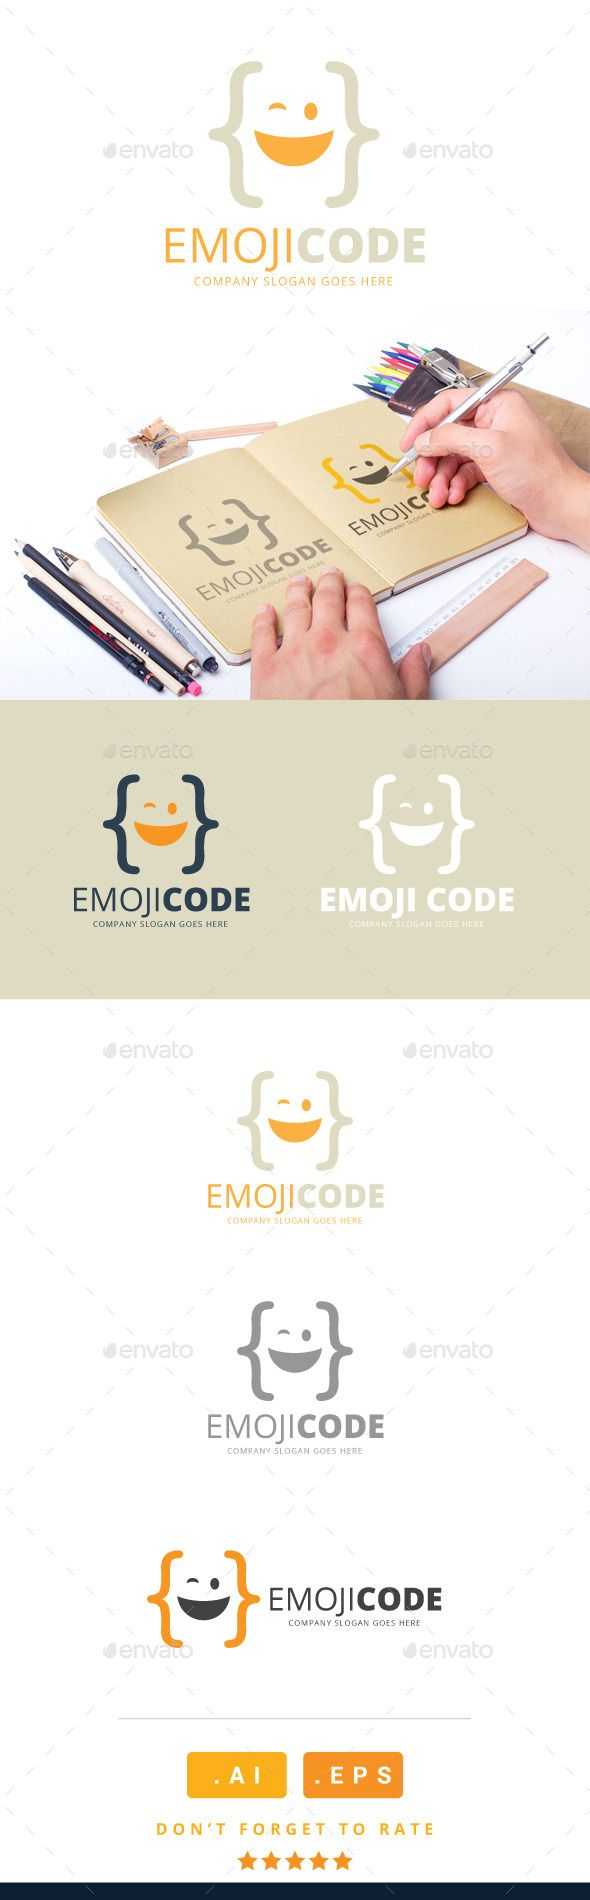 Emoji Code Logo Template Vector EPS, AI. Download here: http://graphicriver.net/item/emoji-code-logo/11213124?ref=ksioks